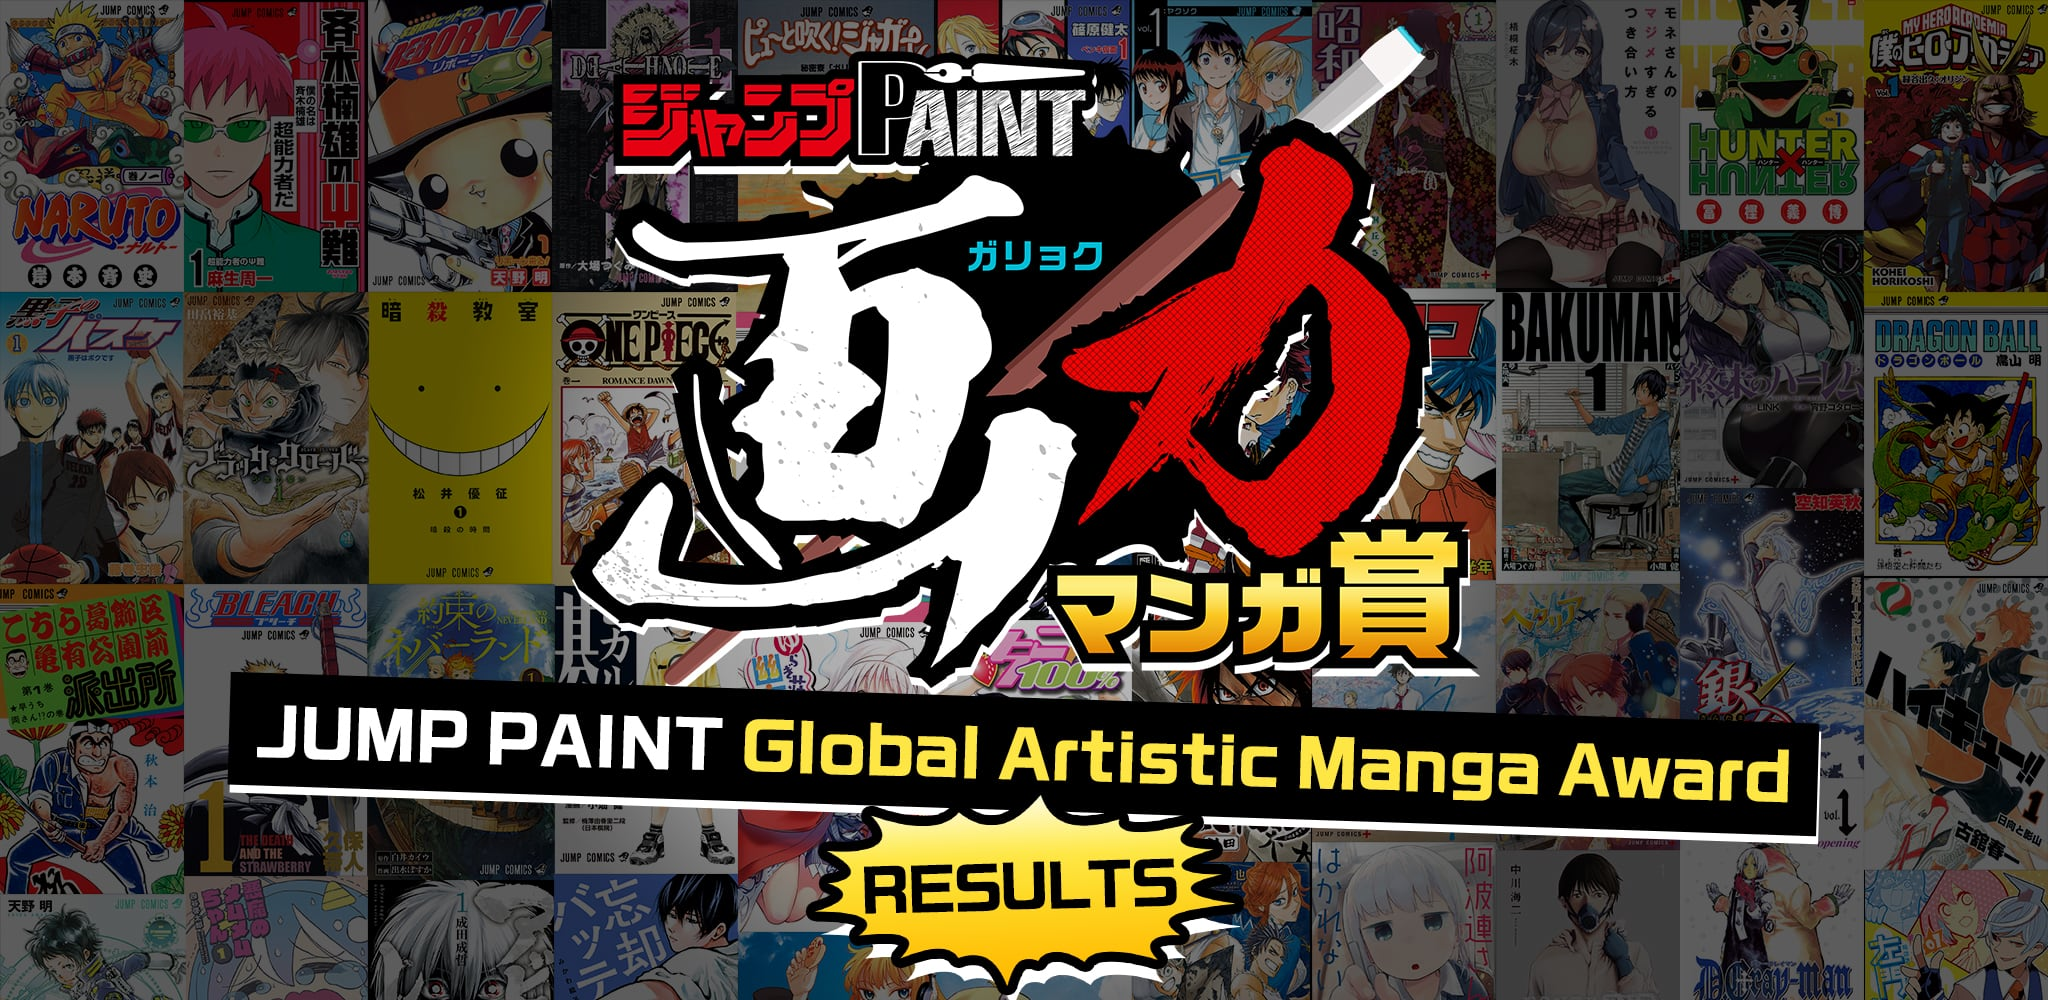 JUMP PAINT Global Artistic Manga Award Results | Contest - ART street by MediBang